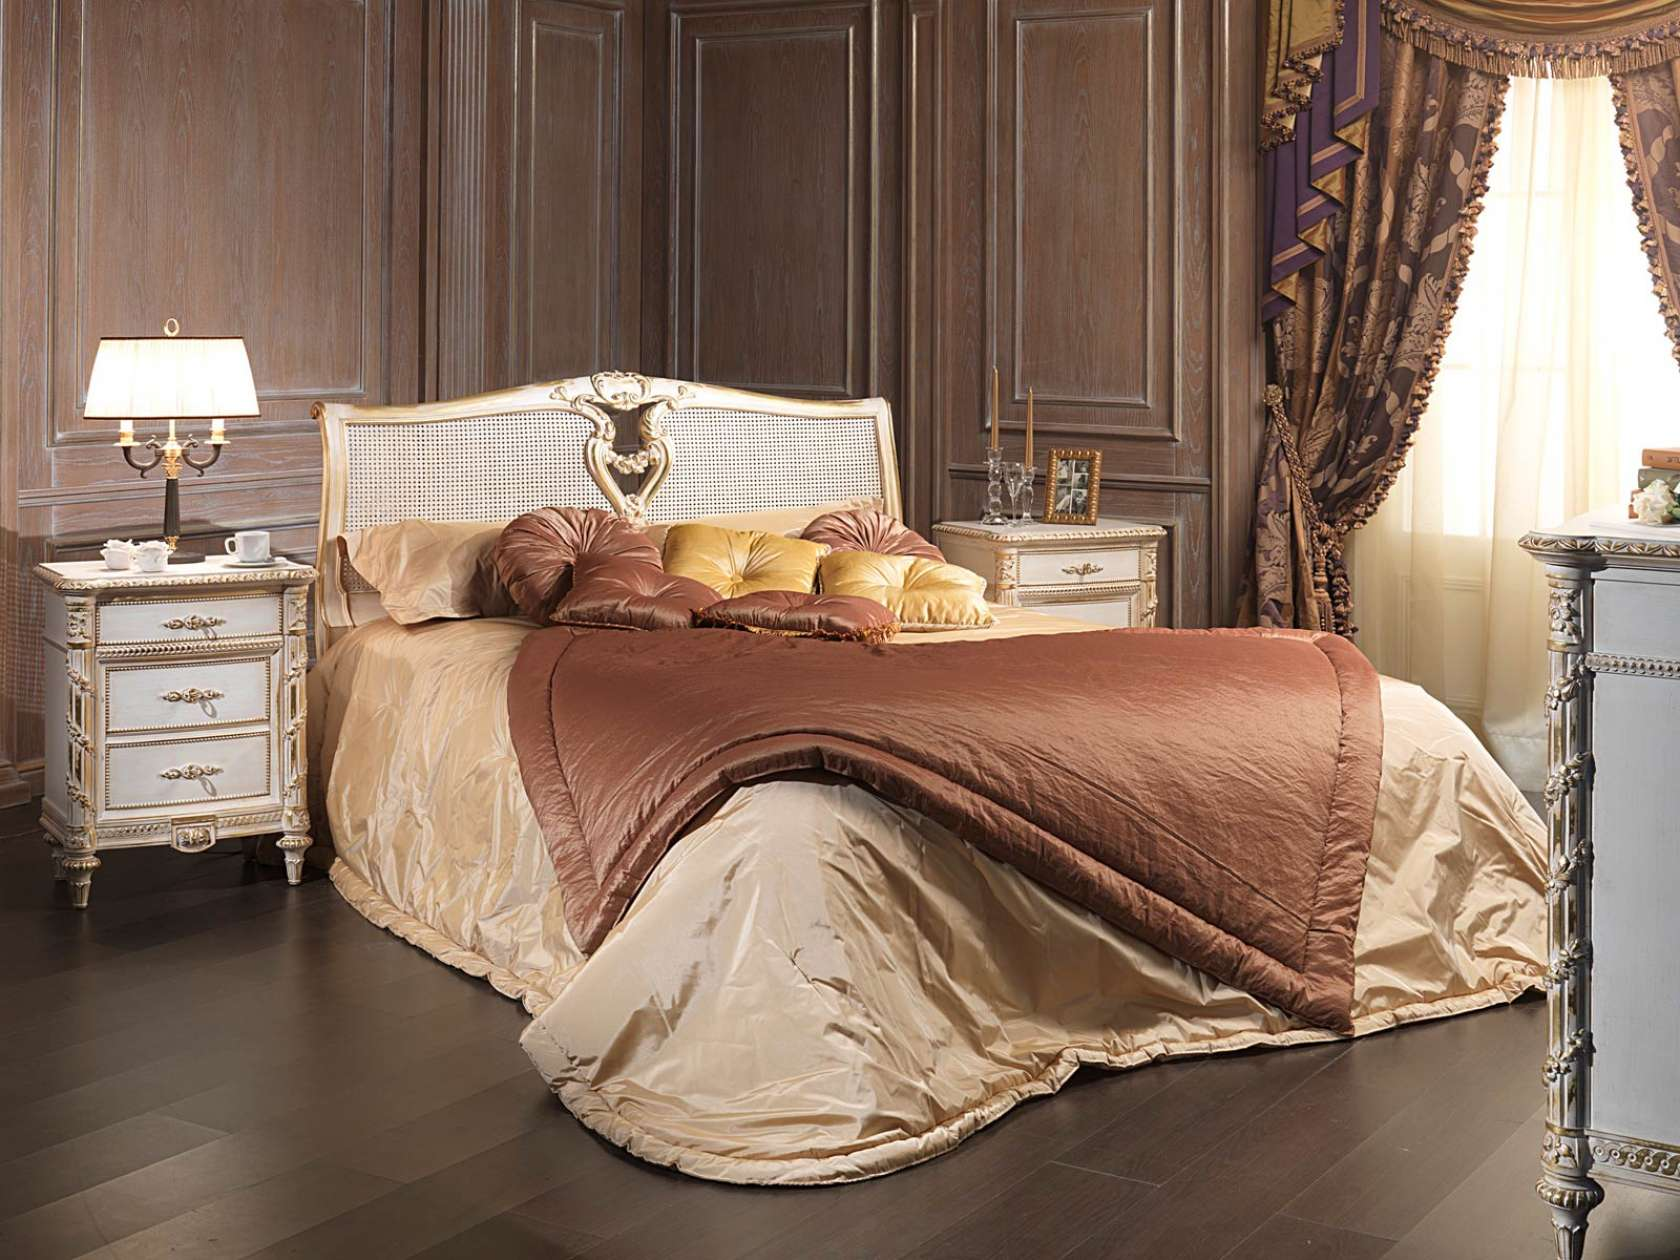 Classic Louis XVI bedroom, bed with headboard in \